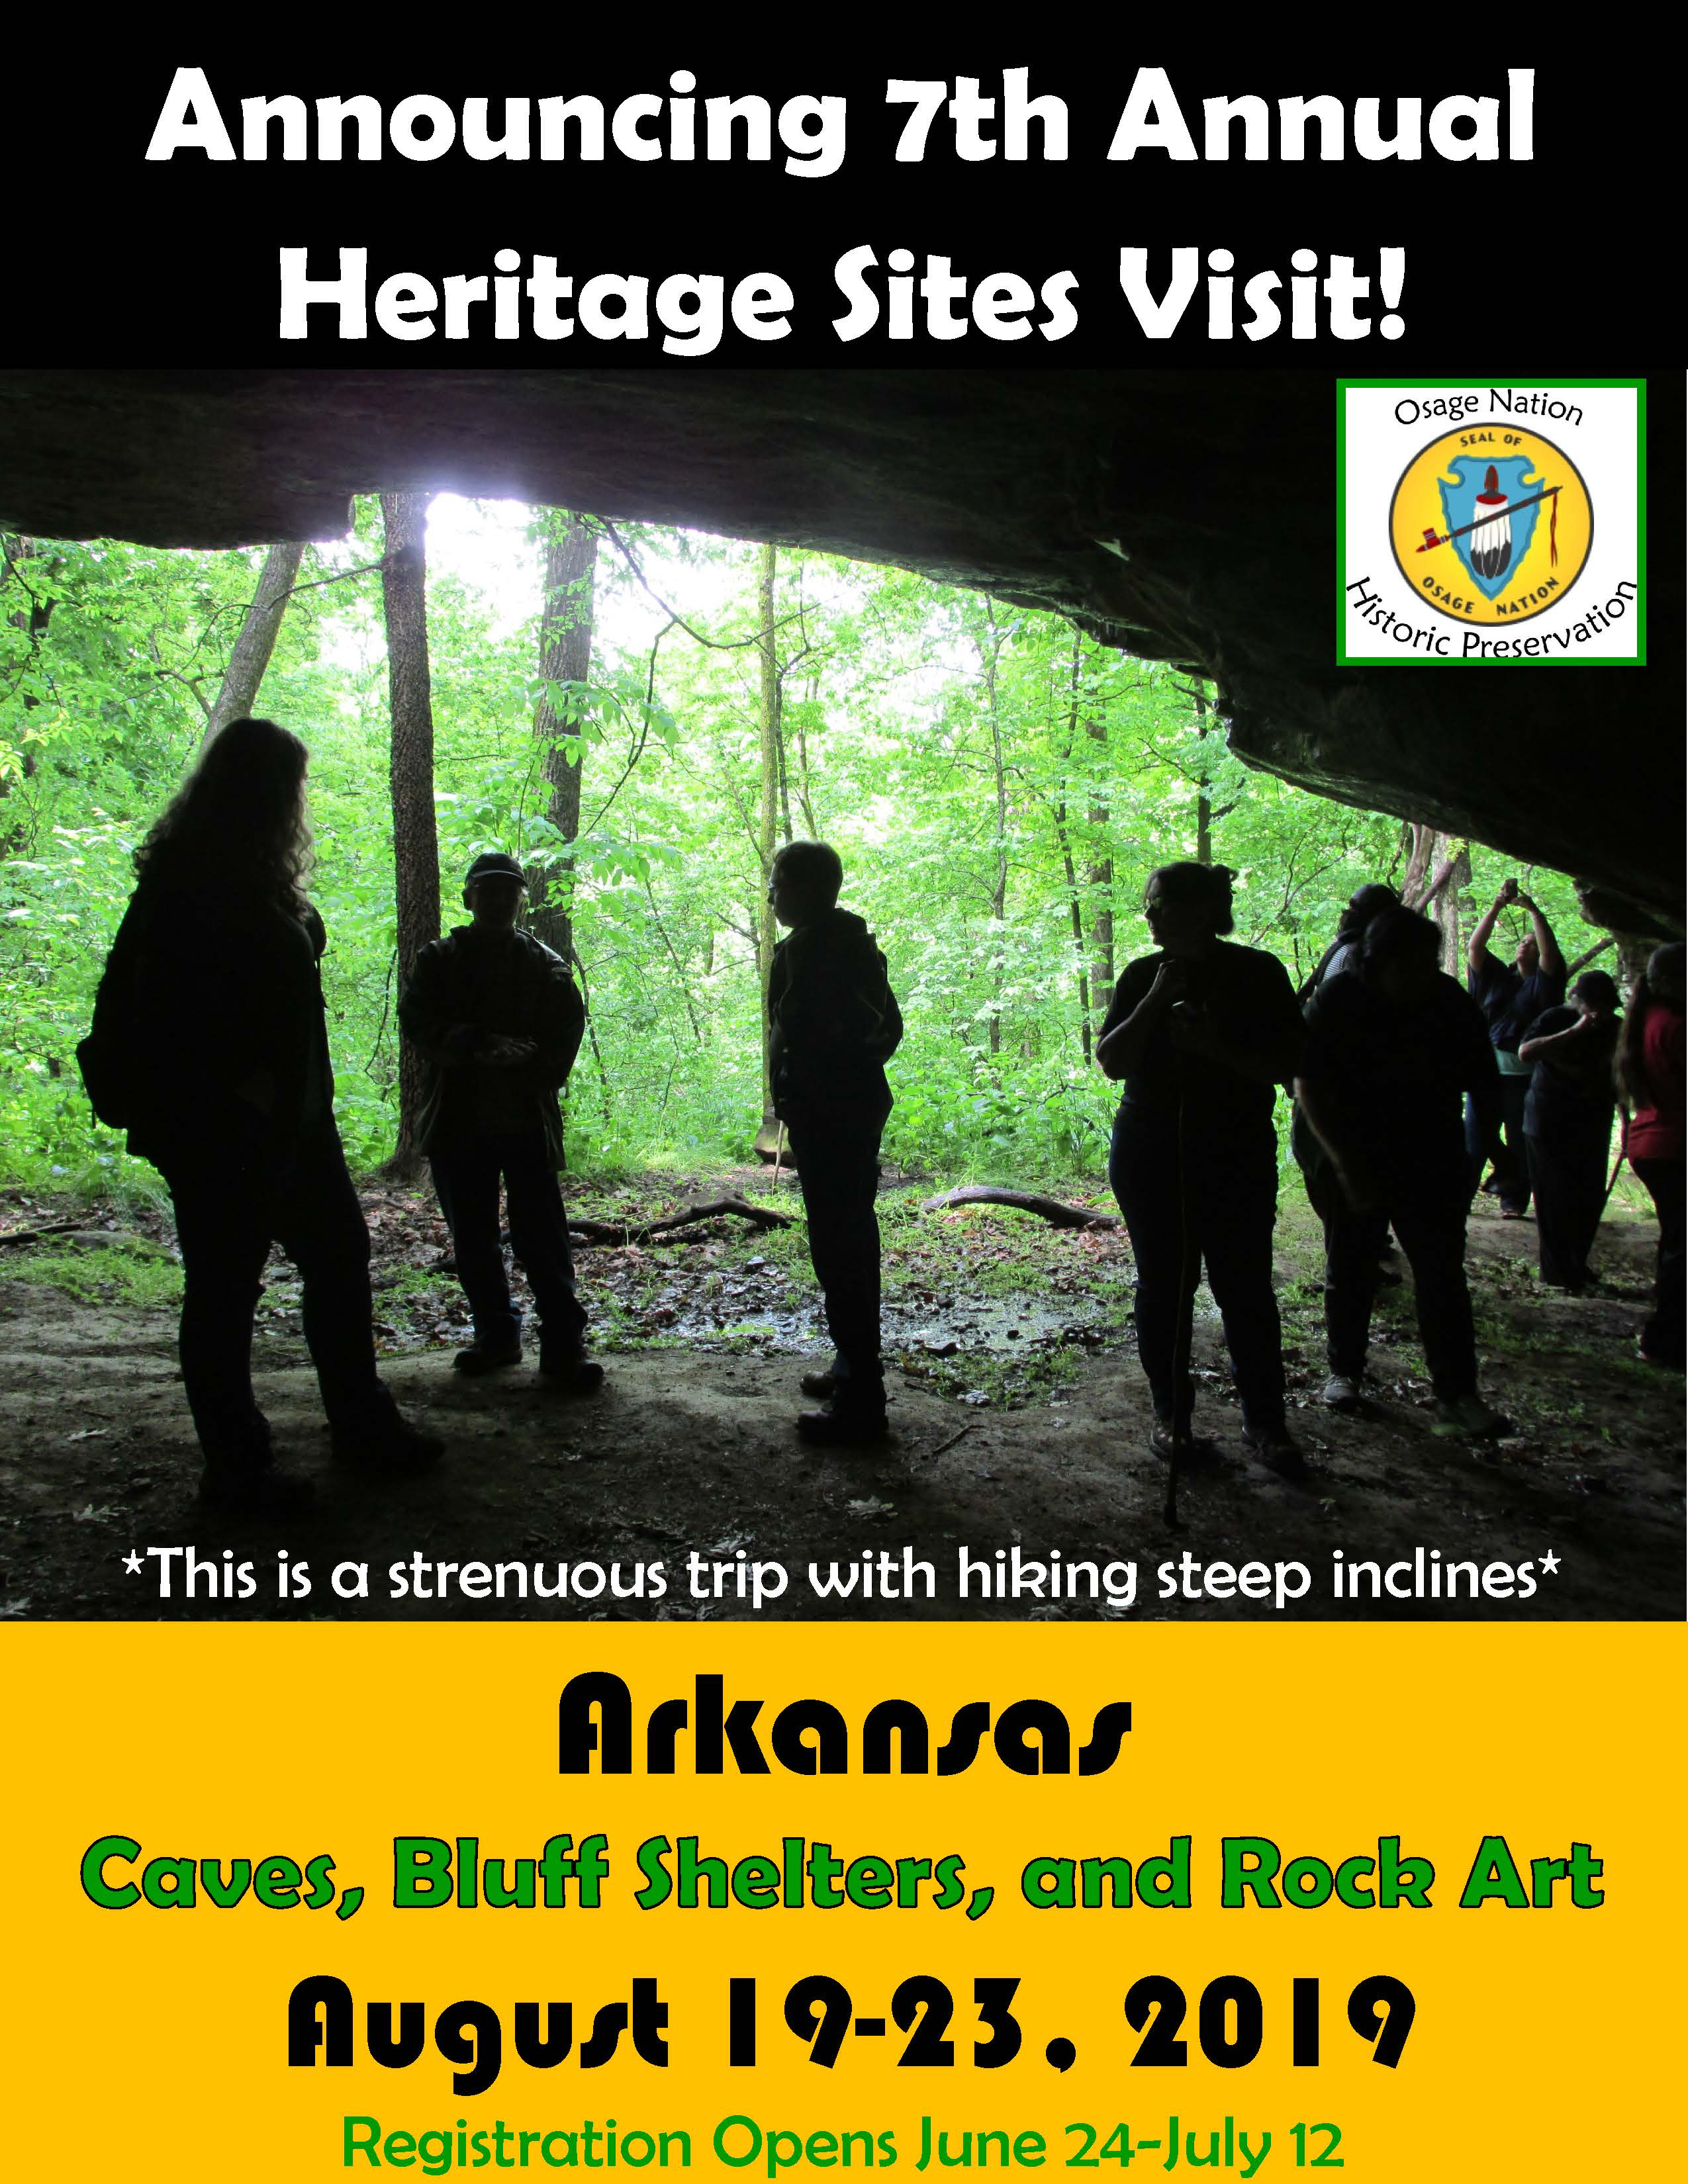 Save the Date announcement. Aug-19-23, 2019 Heritage Site Visit will be held in Arkansas